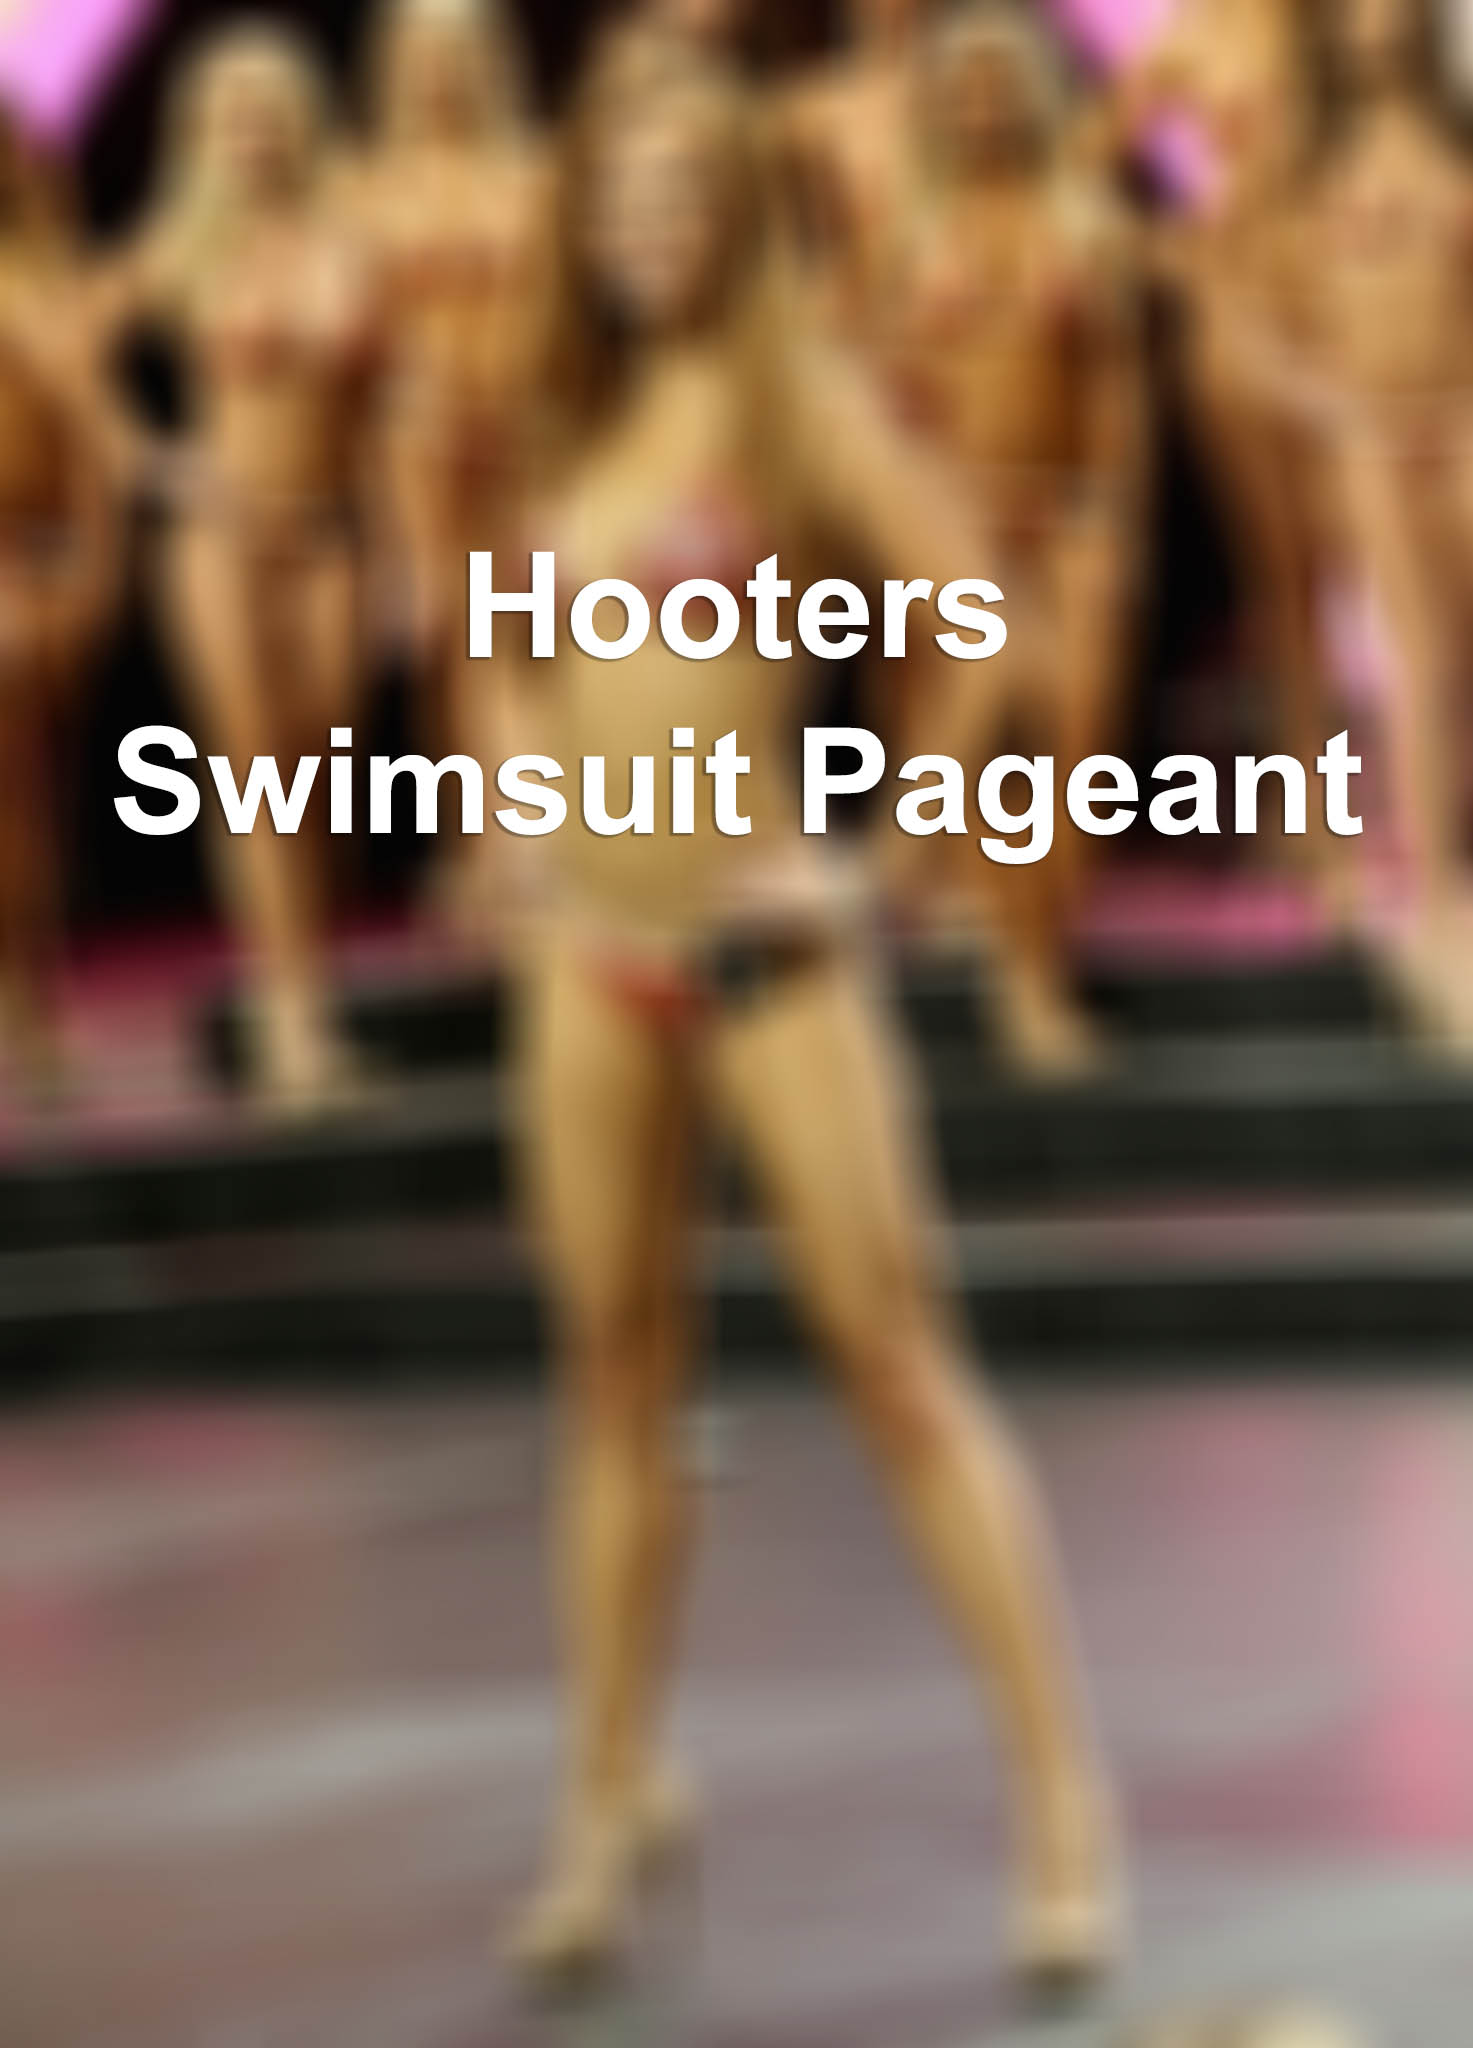 e8b661ad96271 Women dress down for the 21st Annual International Hooters Swimsuit Pageant